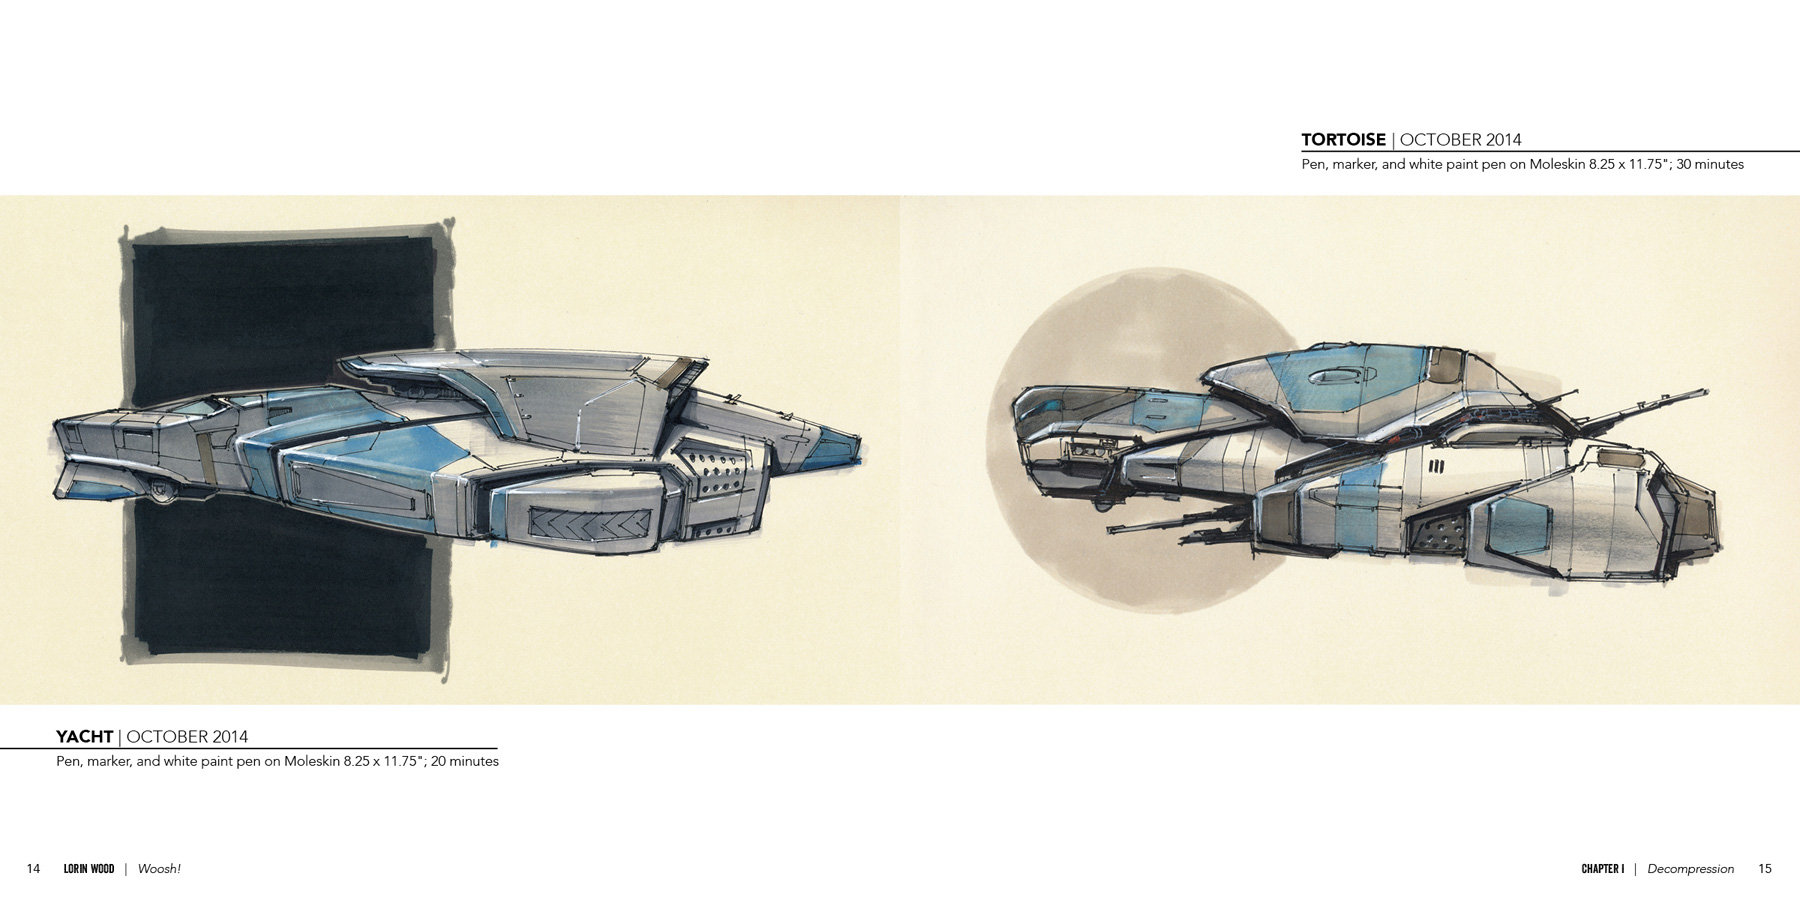 Woosh!: Spaceship Sketches from the Couch